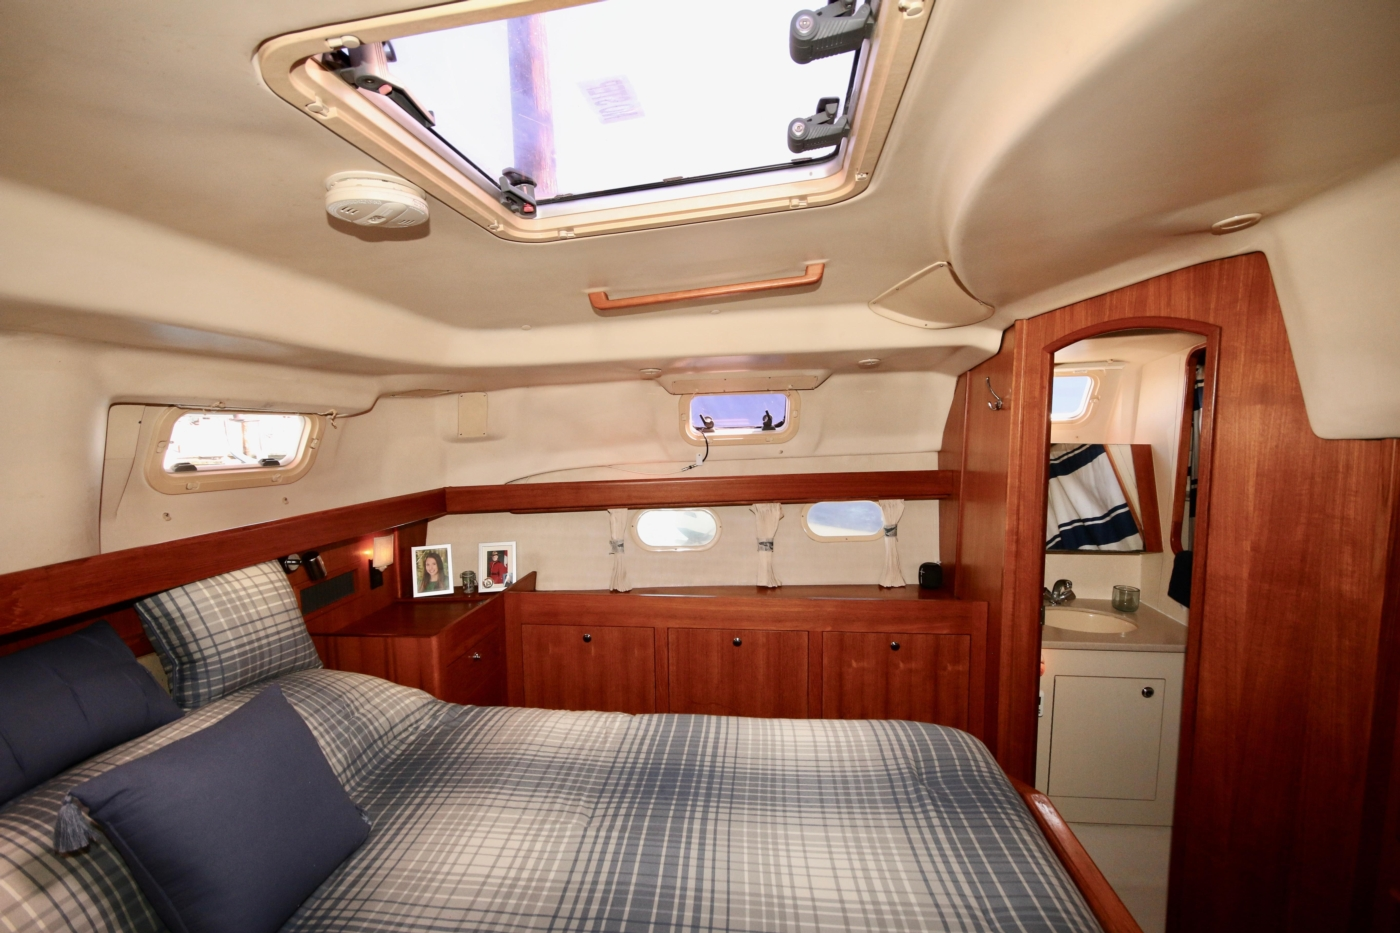 2004 Hunter Passage 420, Master stateroom view to port